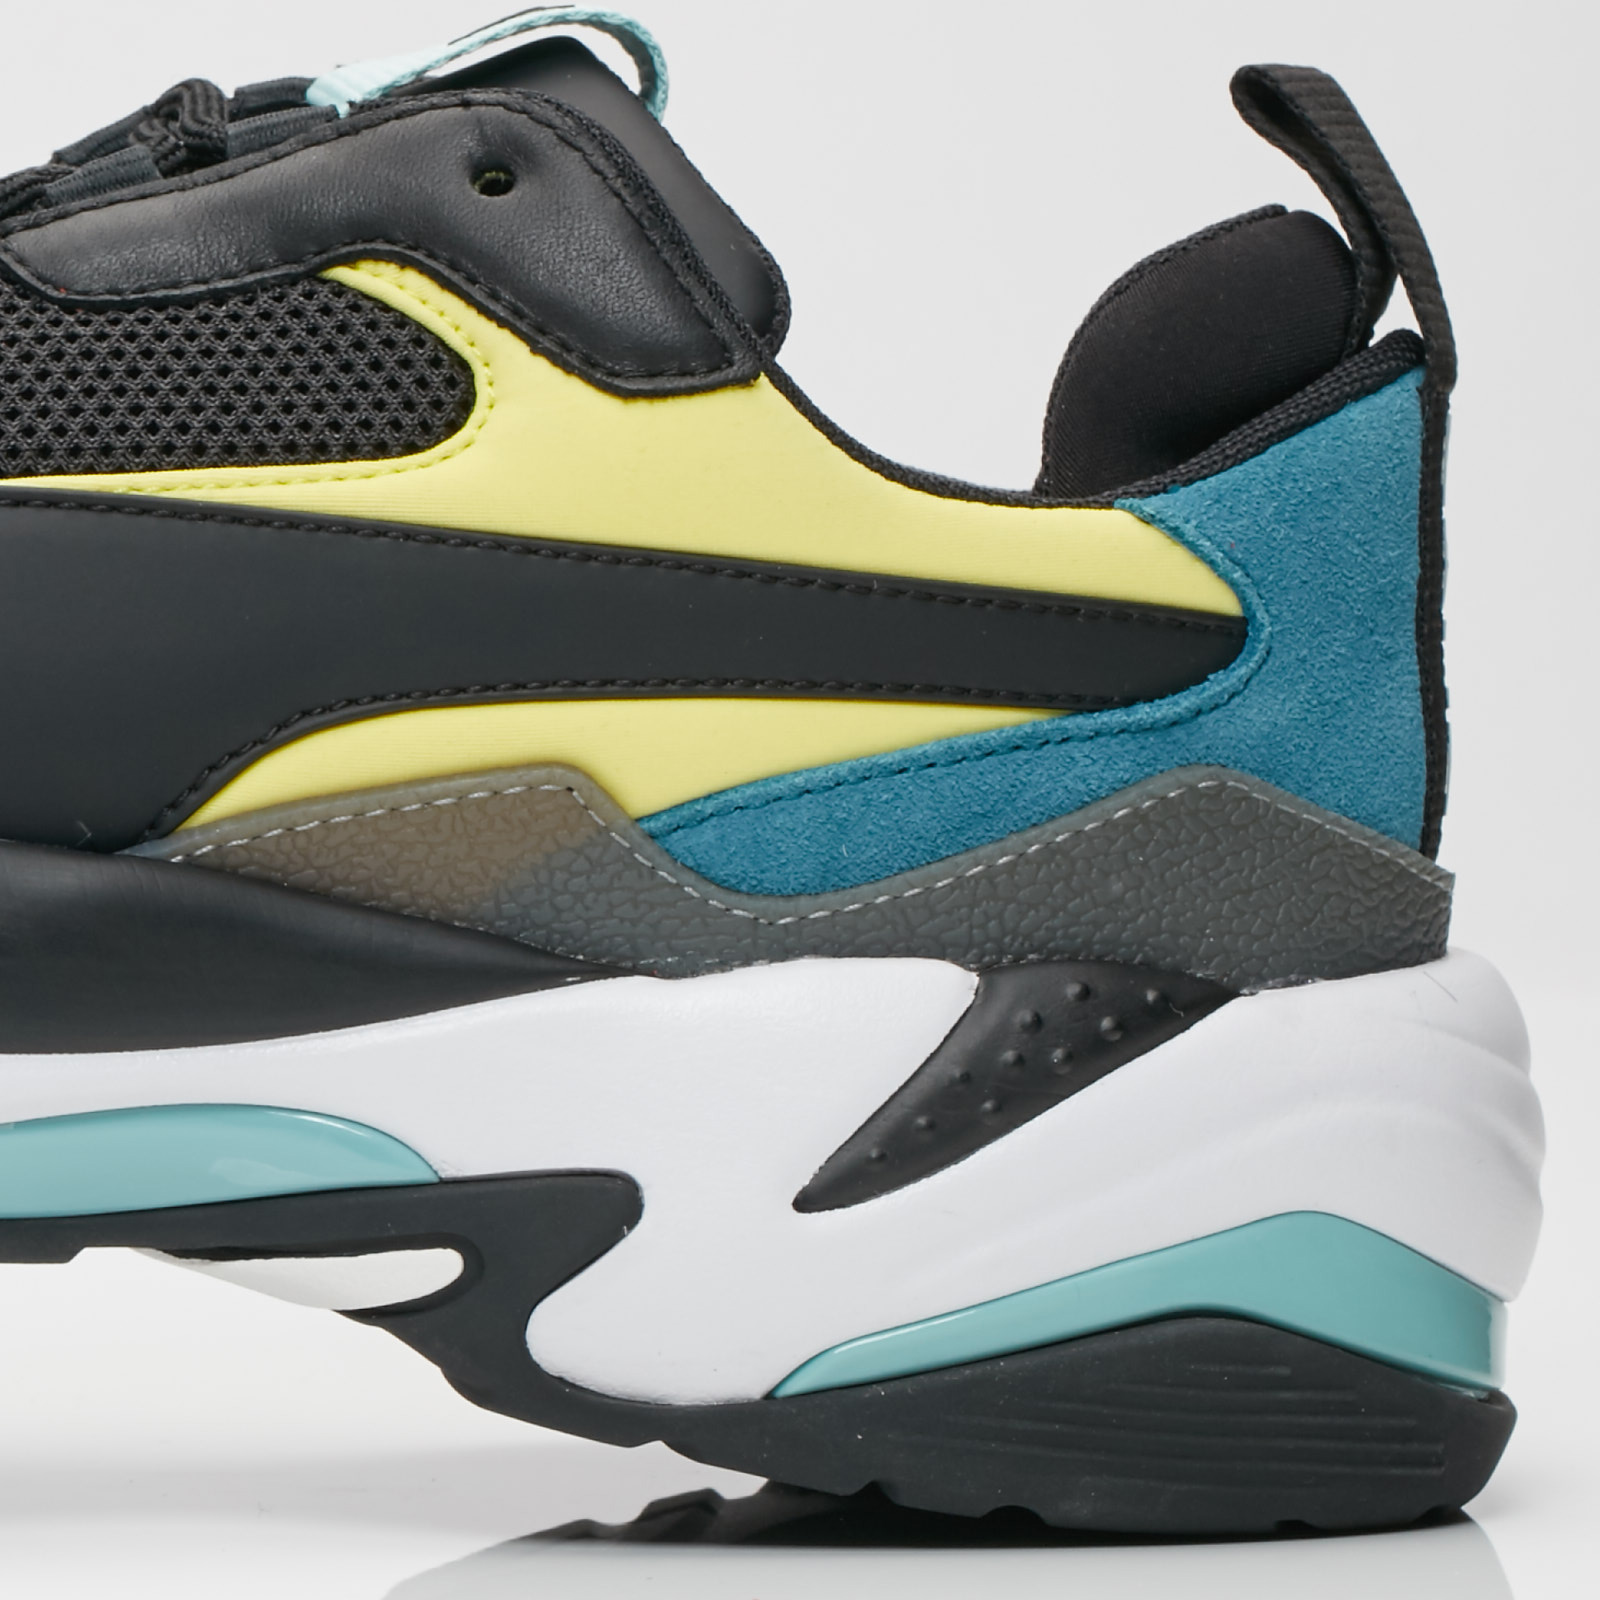 Puma Thunder Spectra 367516 01 Sneakersnstuff I Sneakers